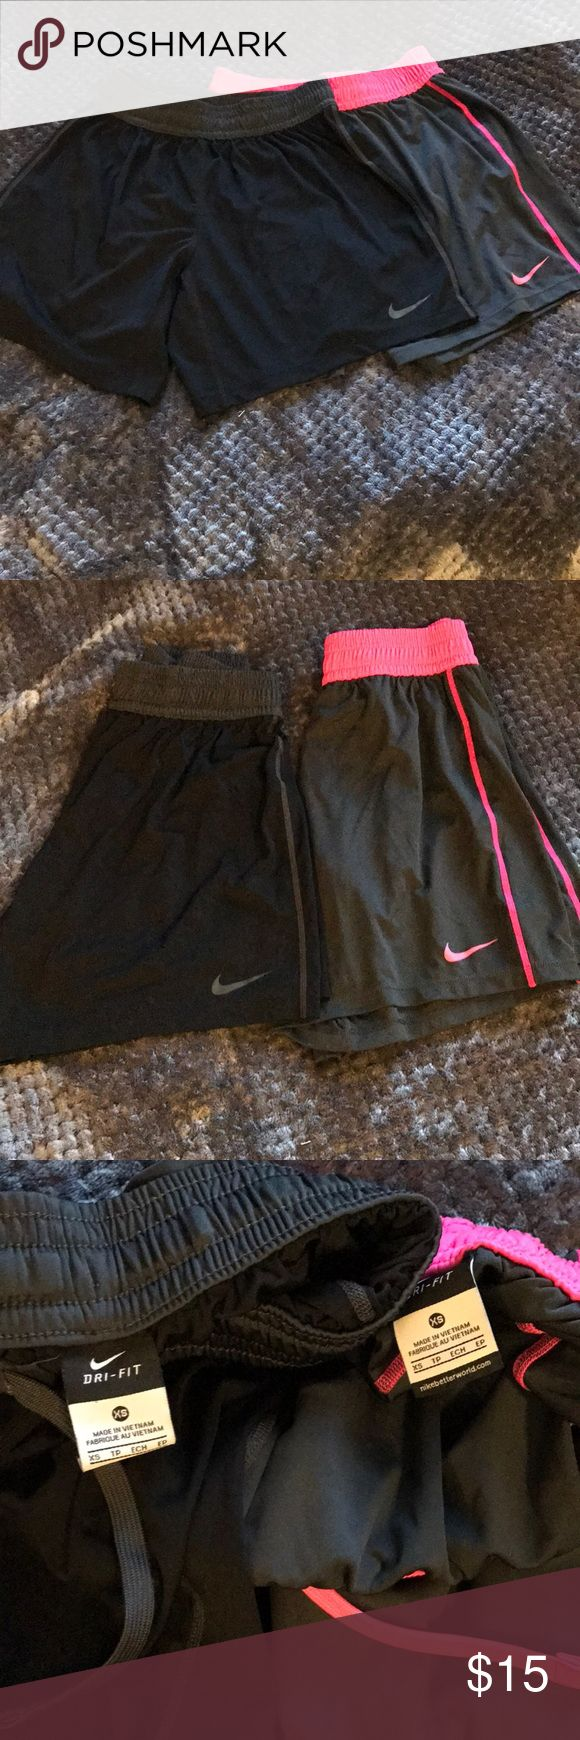 Nike Soccer Short Bundle Black pair with grey detailing and grey pair with pink detailing. Both draw string waist, longer fit. Both identical shorts in XS. Nike Shorts